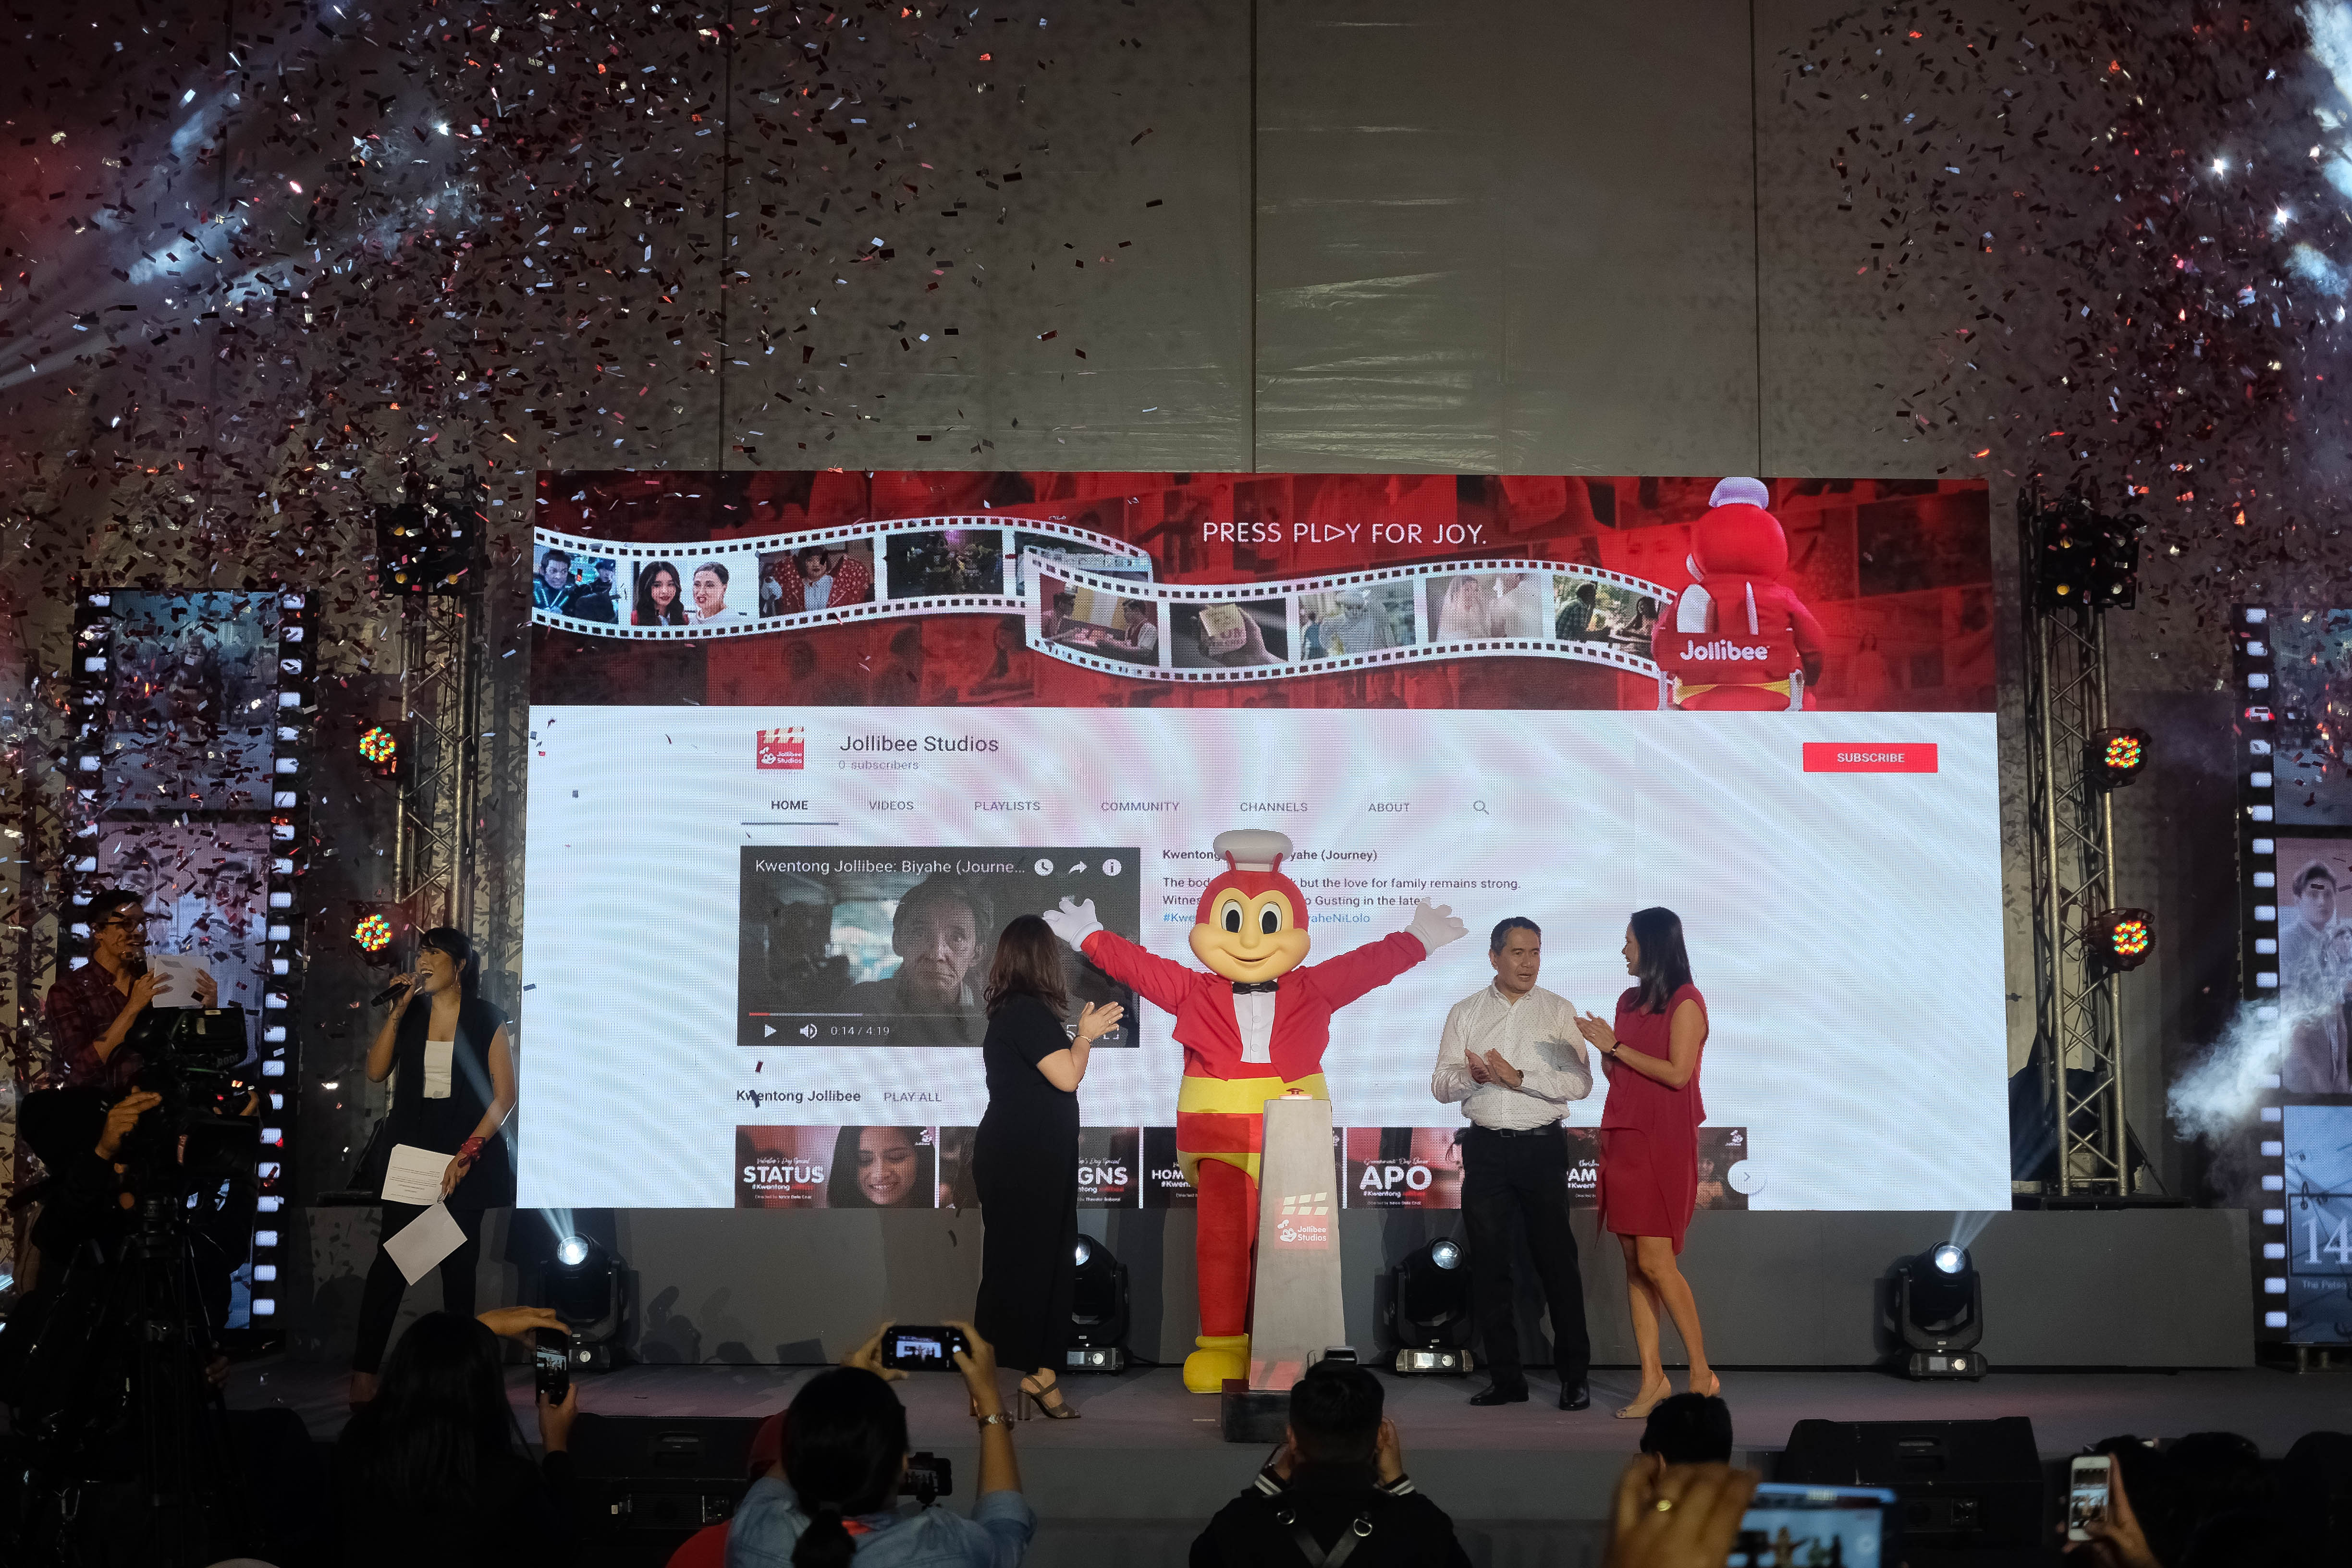 Jollibee Launched its Newest Entertainment Channel on Youtube – Jollibee Studios